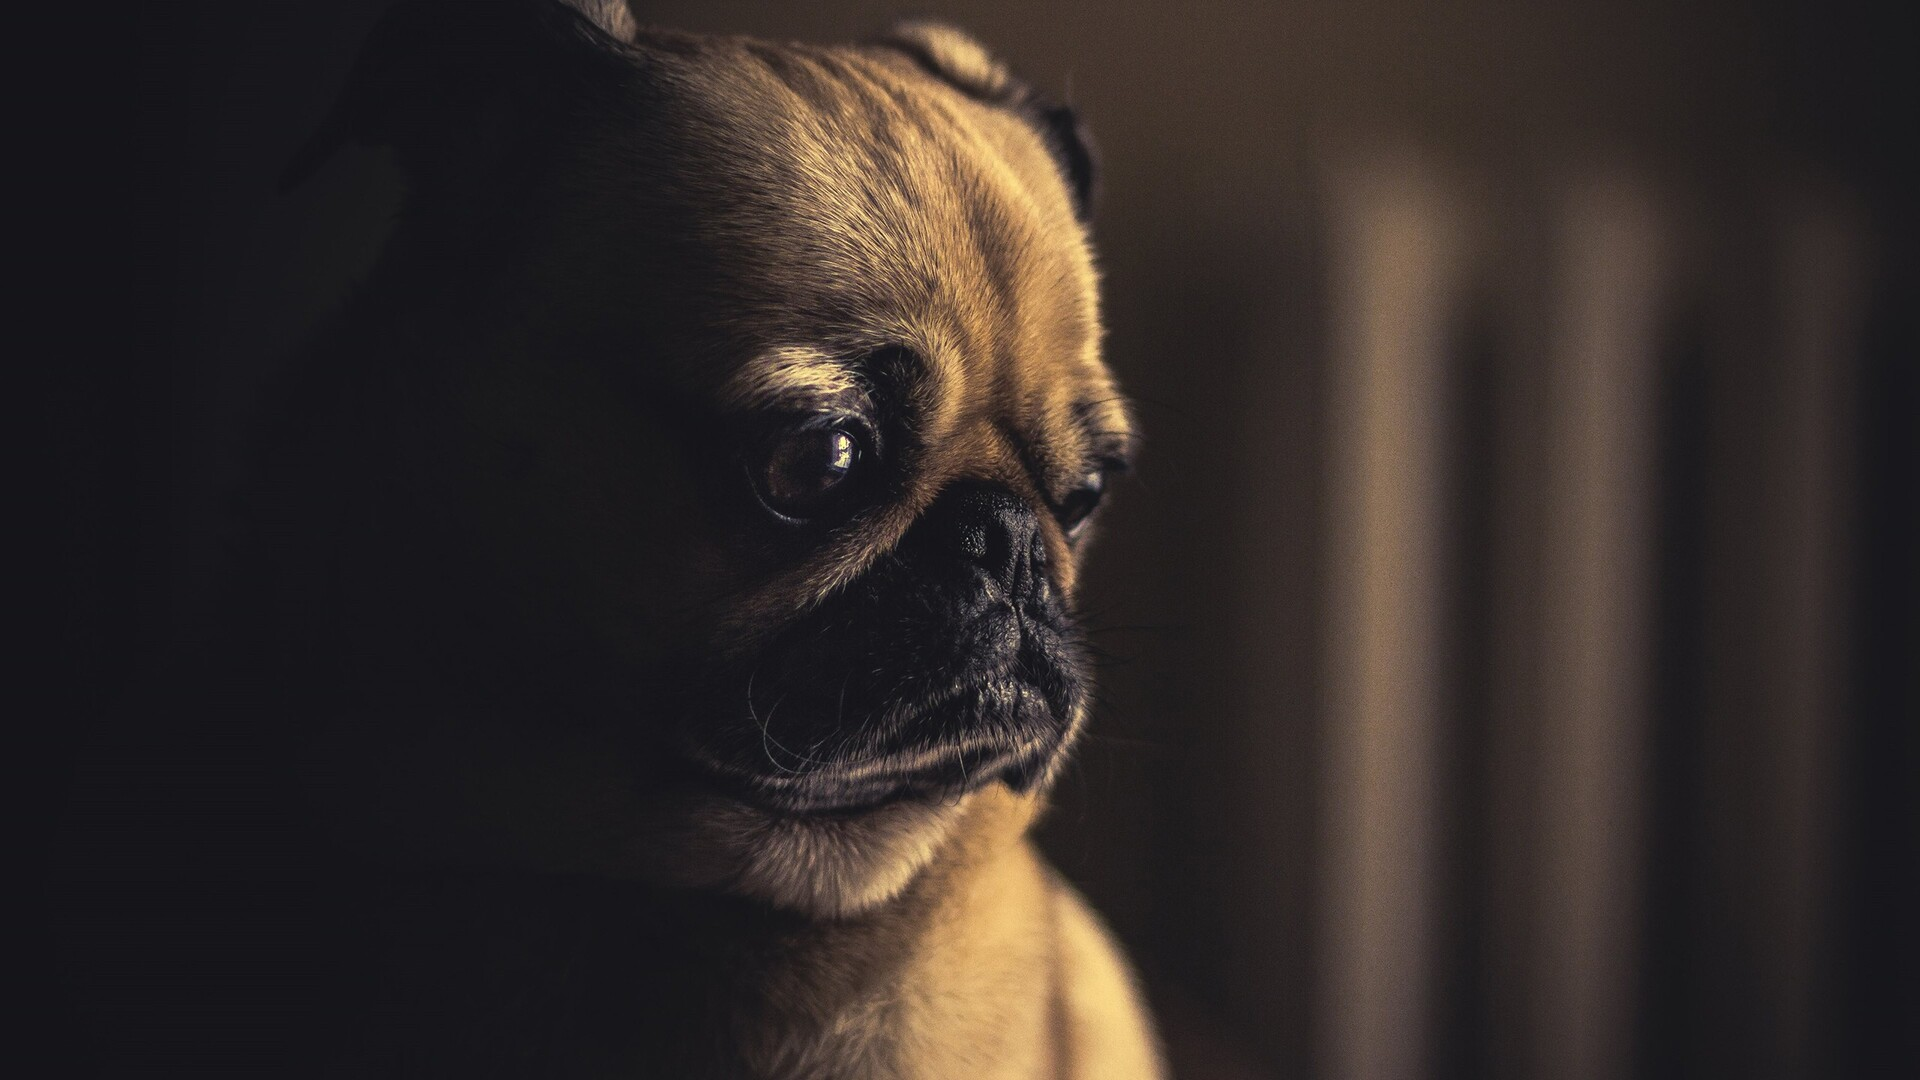 1920x1080 pug sad laptop full hd 1080p hd 4k wallpapers, images